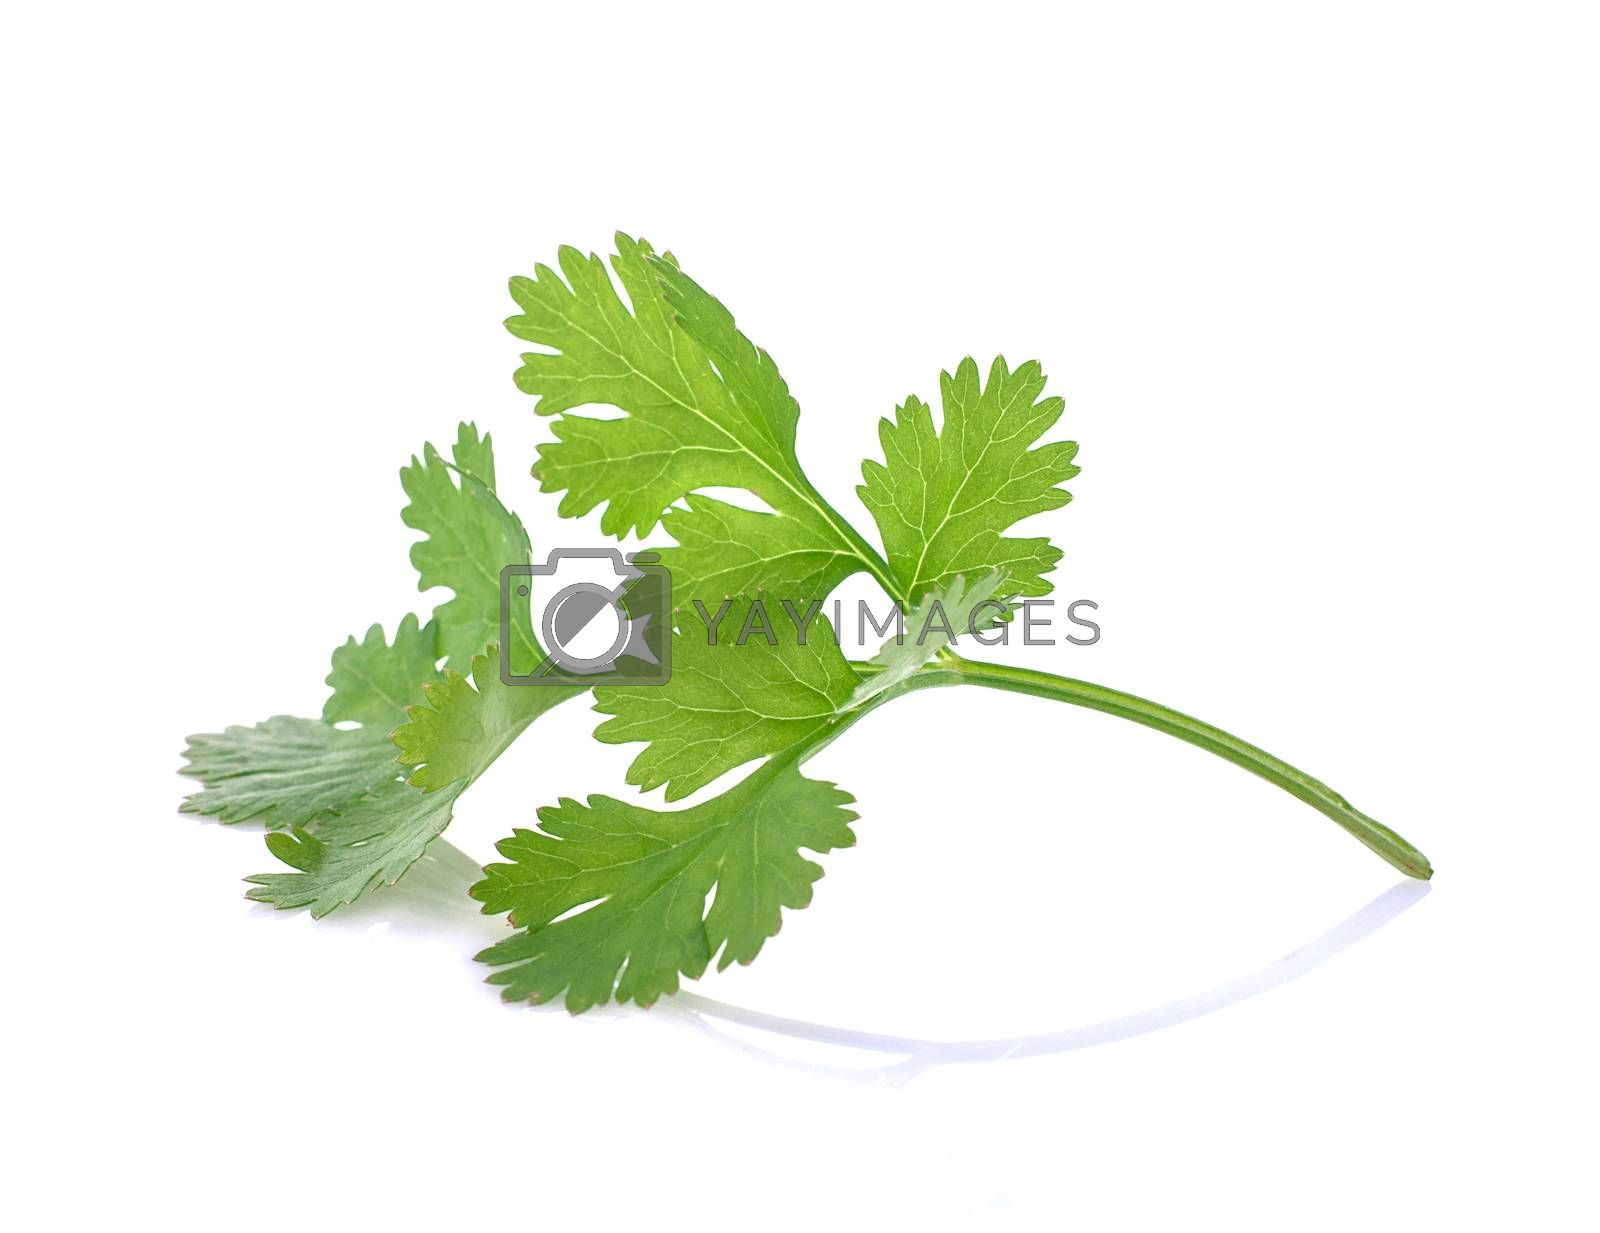 Coriander leaf isolated on white background  by gukgui